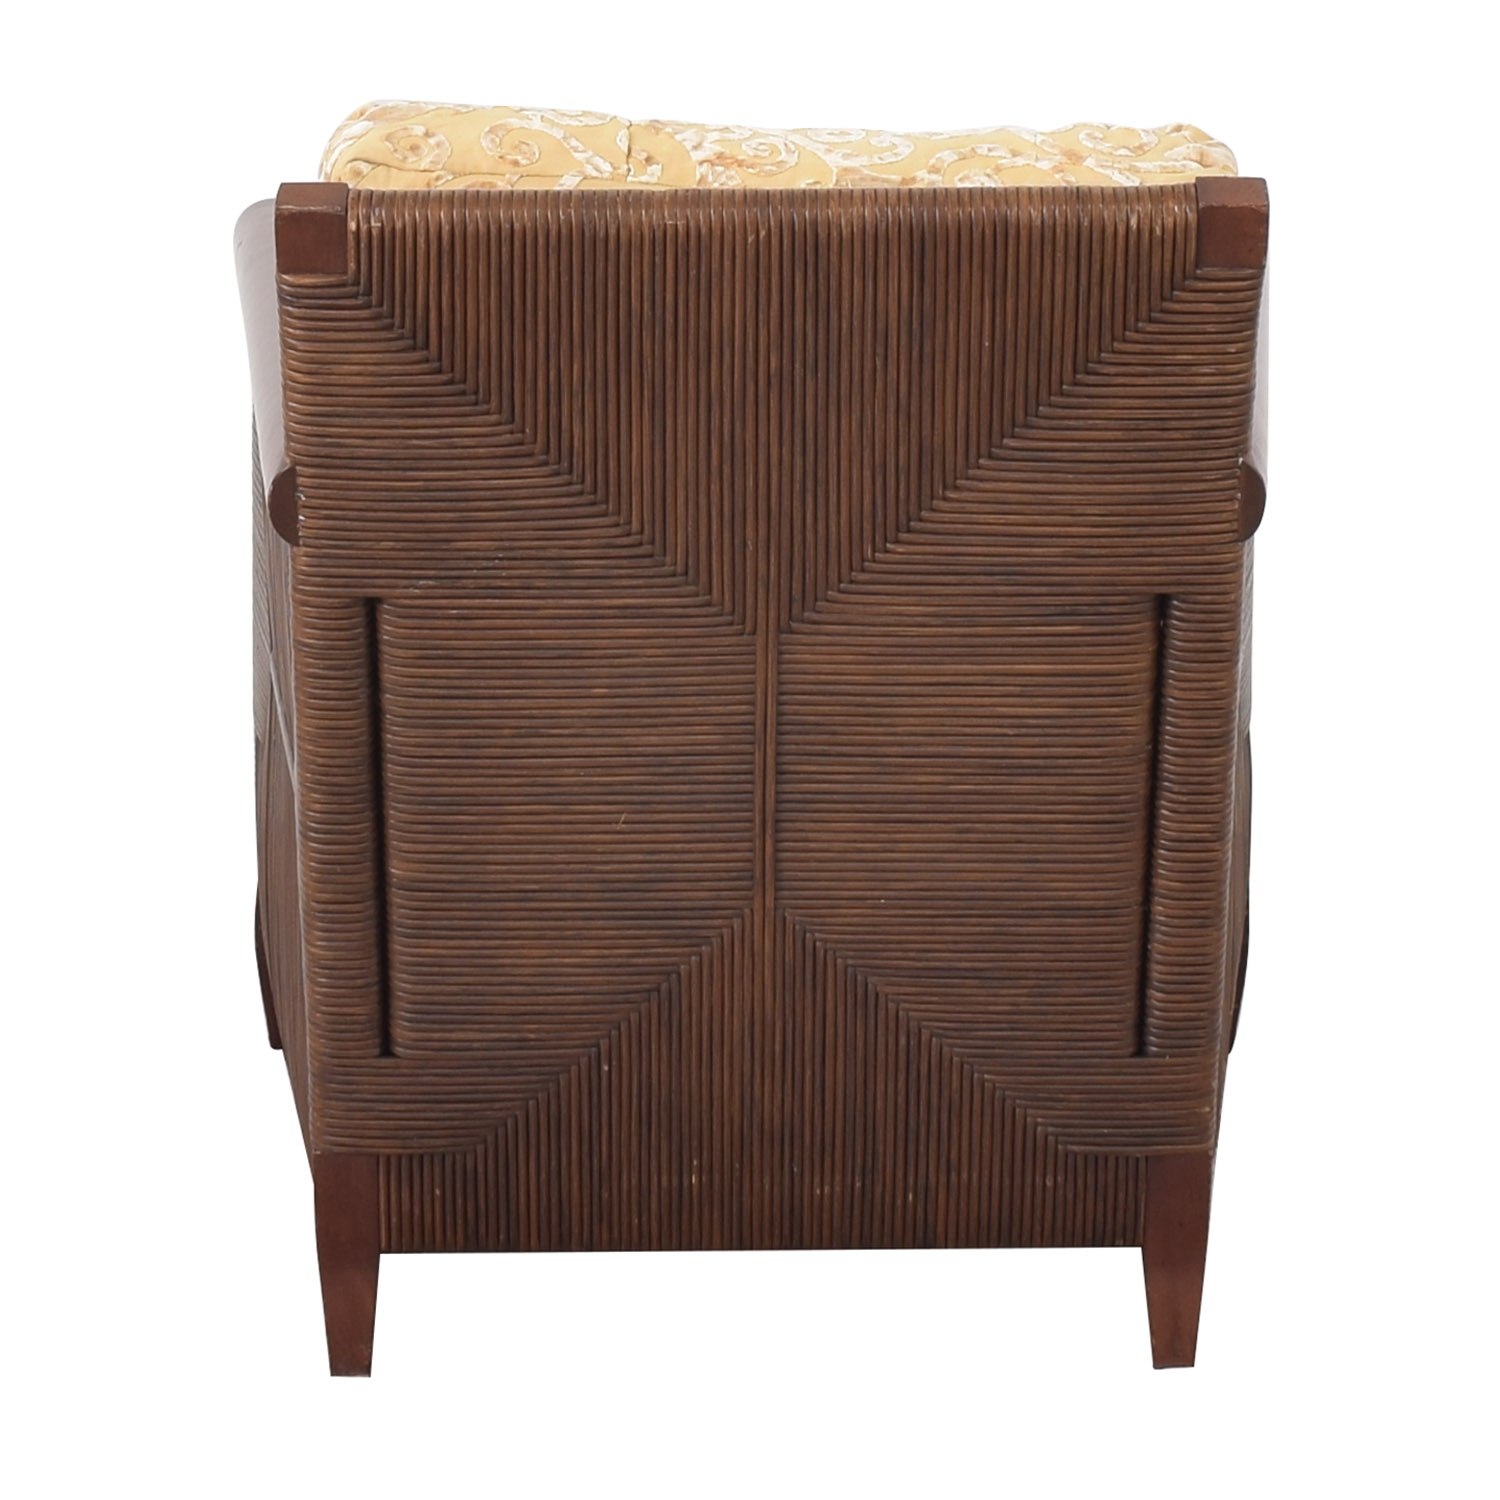 shop Donghia by John Hutton Mahogany and Wicker Lounger Donghia Chairs